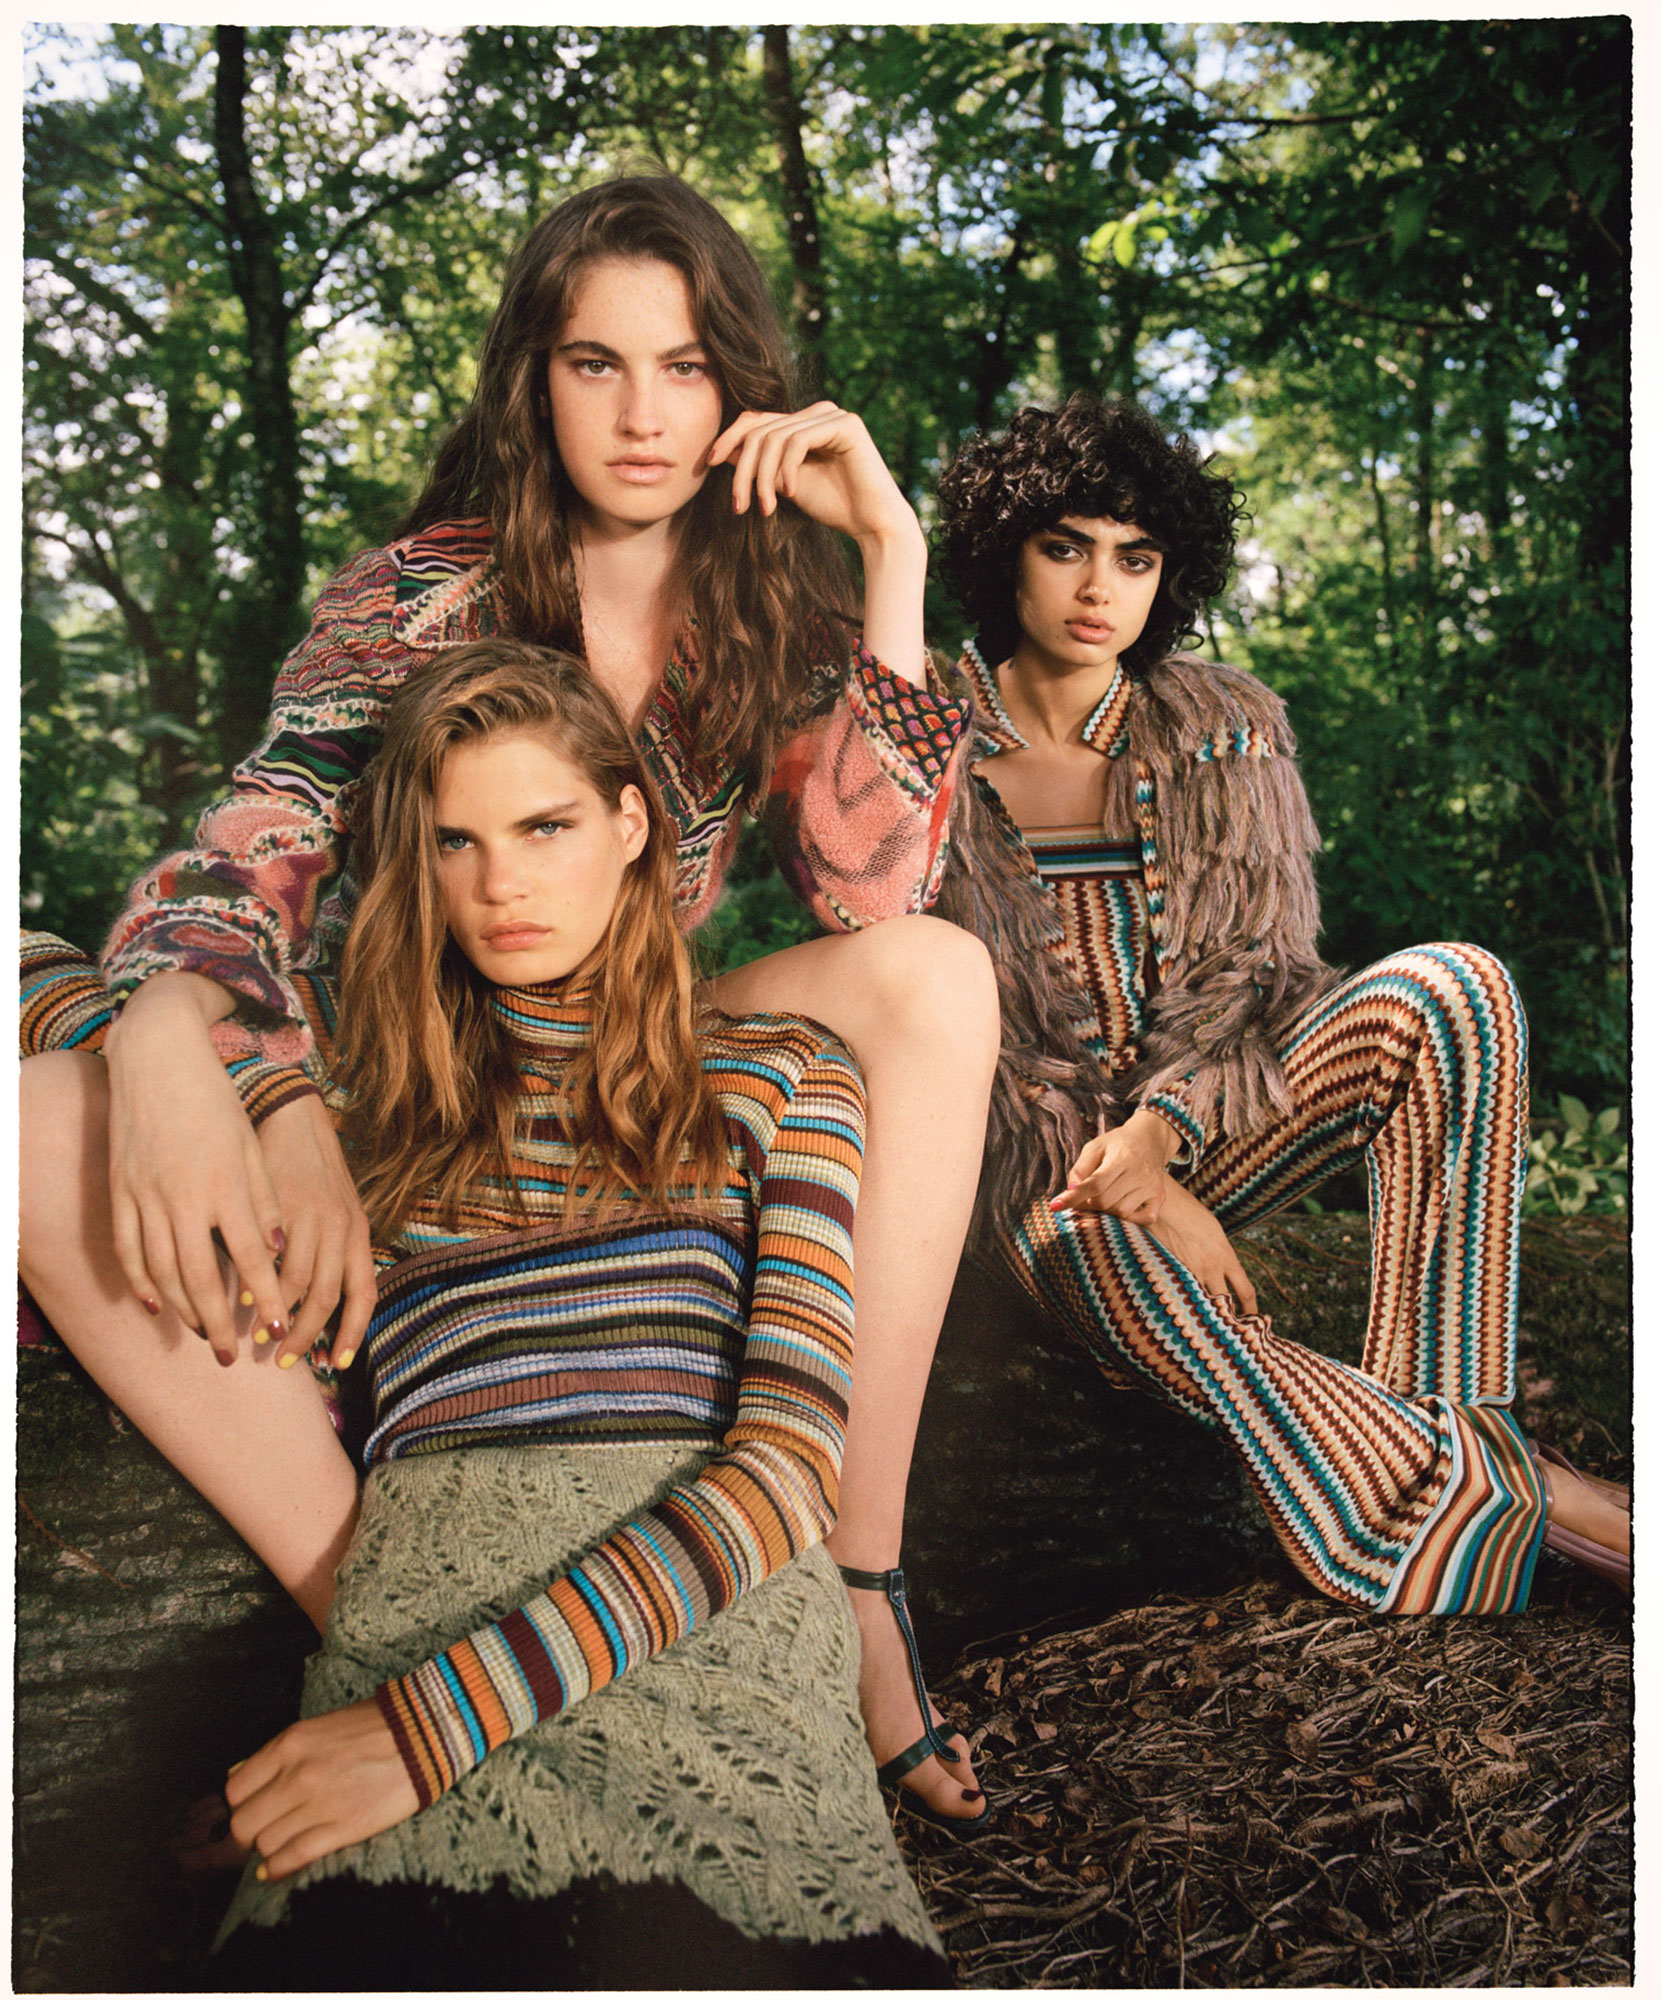 Maison Missoni, September 2017 | Daniel Regan | Missoni | Enrica Ponzellini | Numerique Retouch Photo Retouching Studio